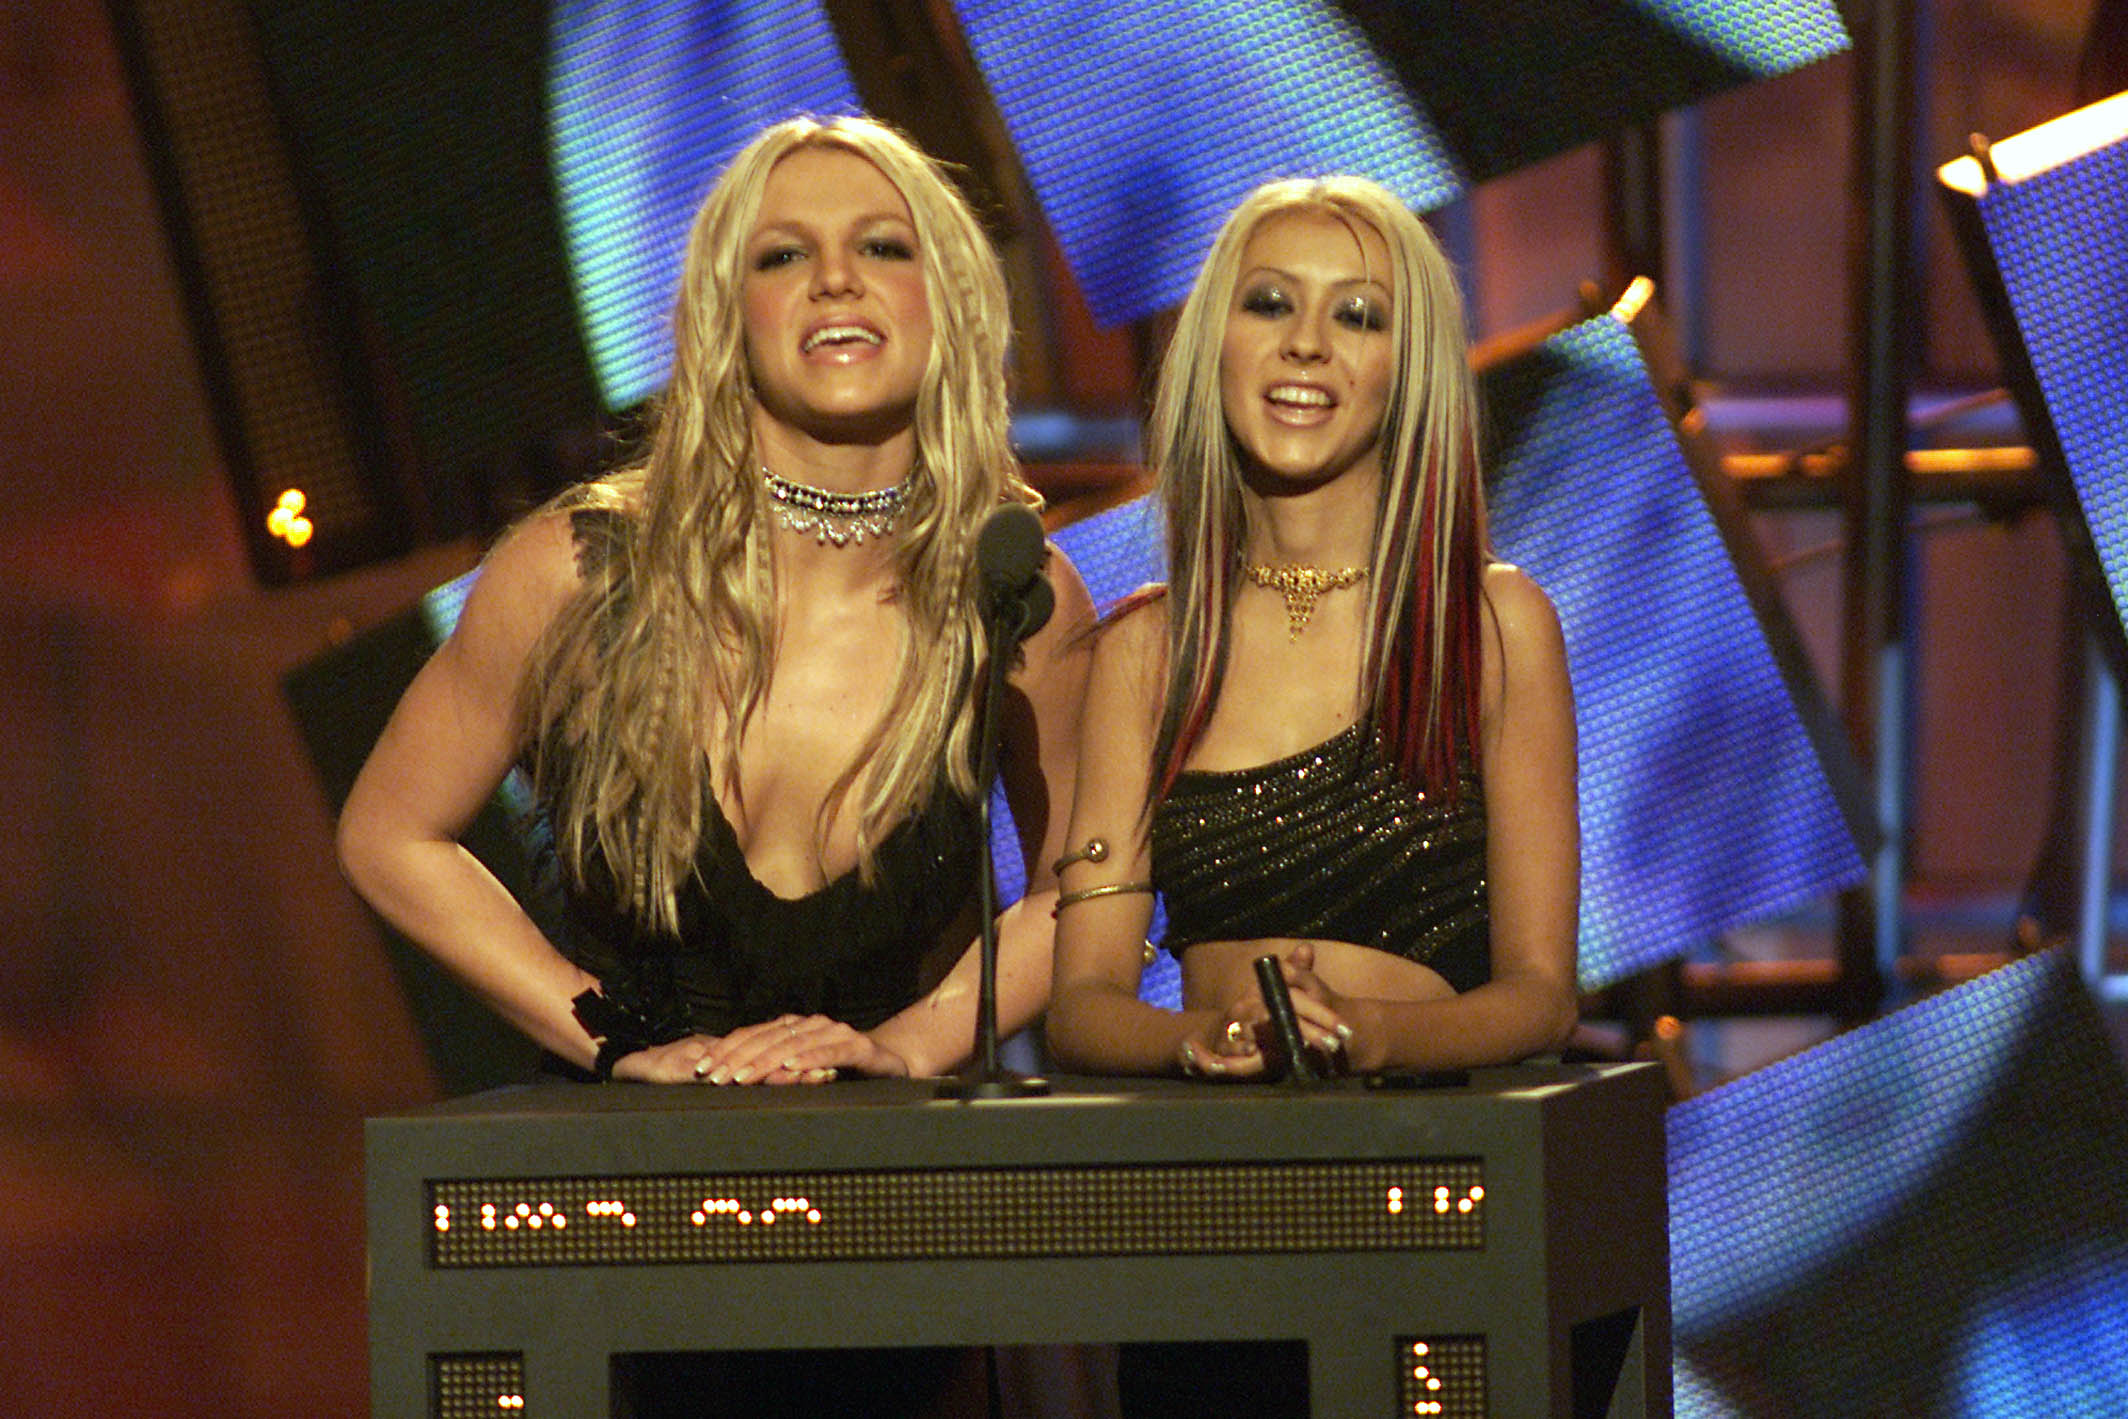 Pop stars Britney Spears and Christina Aguilera can be seen as the last blonde sex symbols of the 20th century (Photo: Getty).